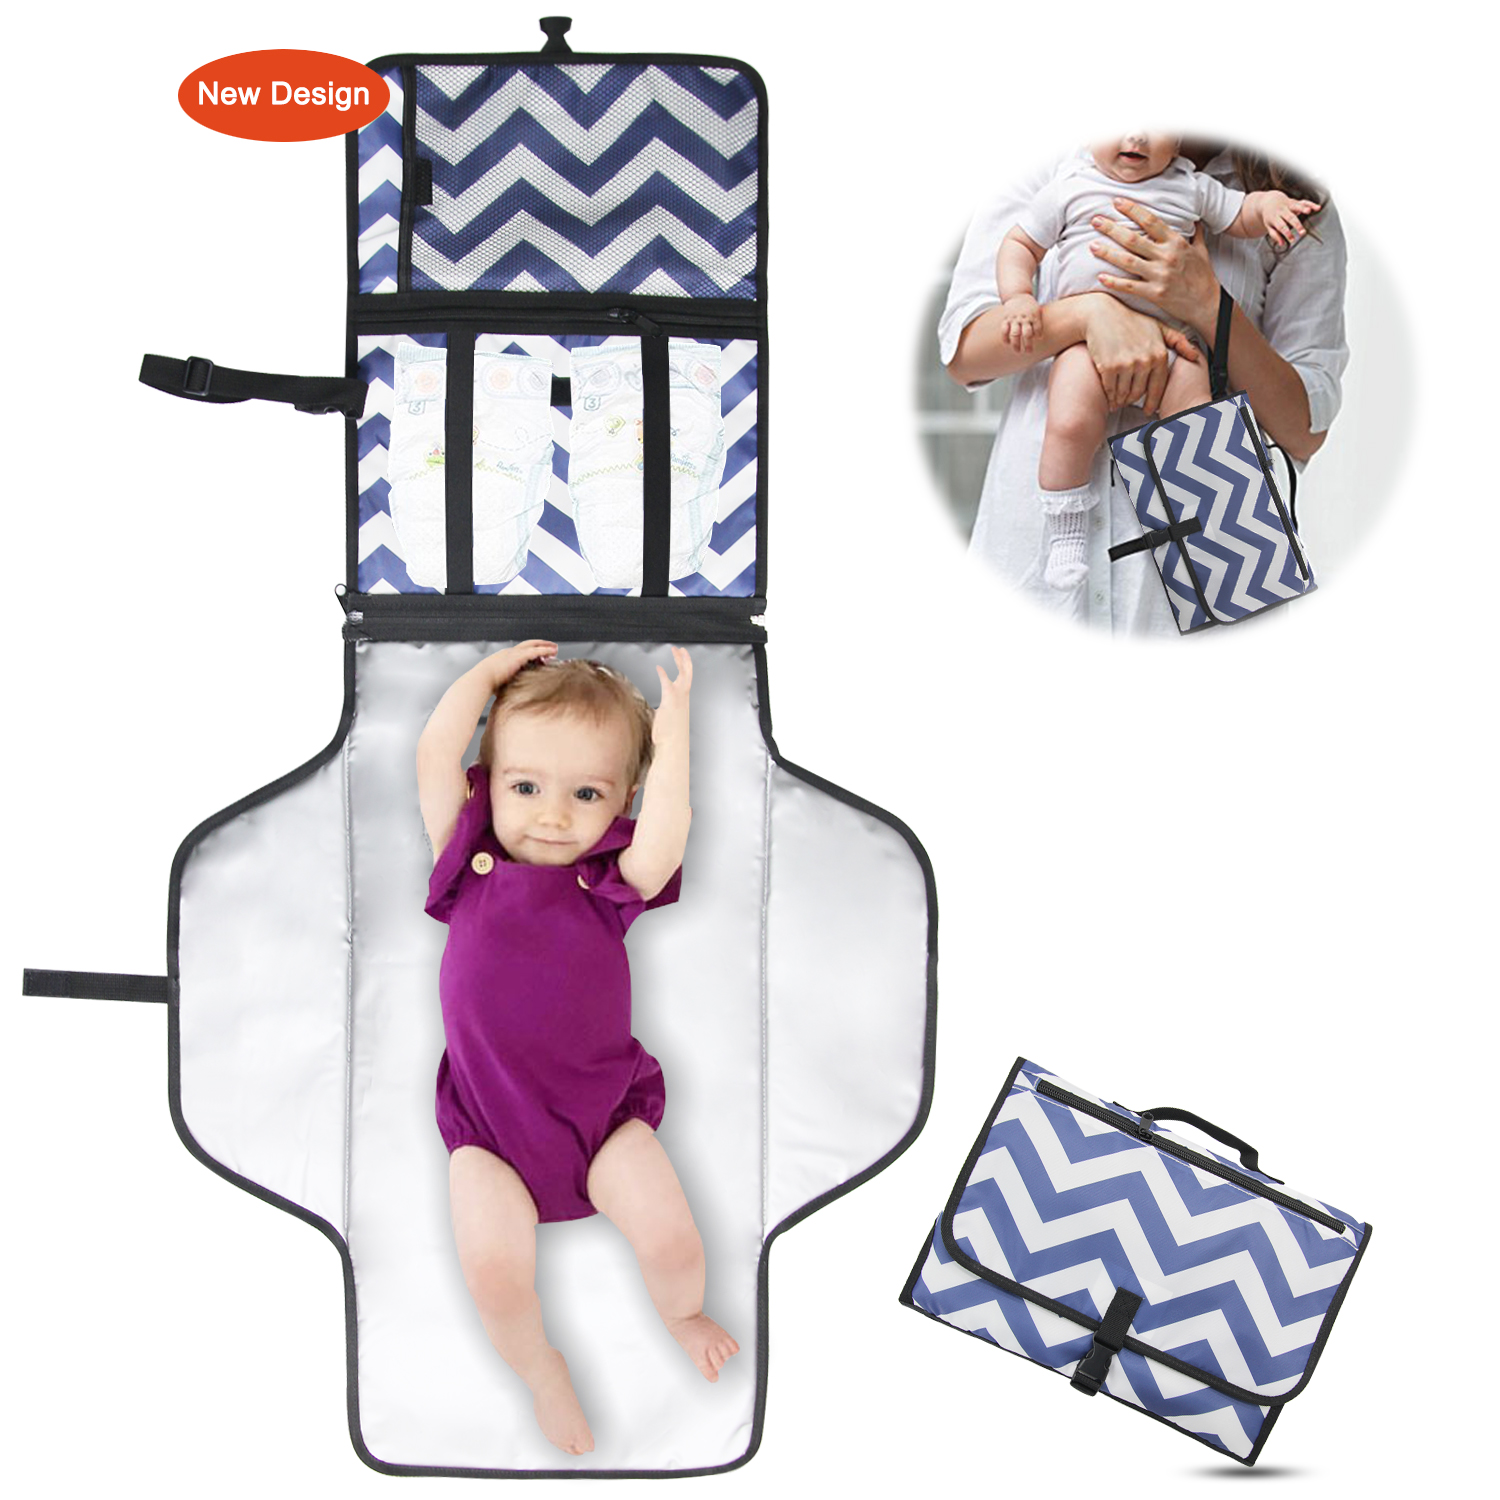 Portable Changing Pad - Diaper Clutch - Lightweight Travel Station Kit for Baby Diapering - Entirely Padded, Detachable and Wipeable Mat - Mesh and Zippered Pockets